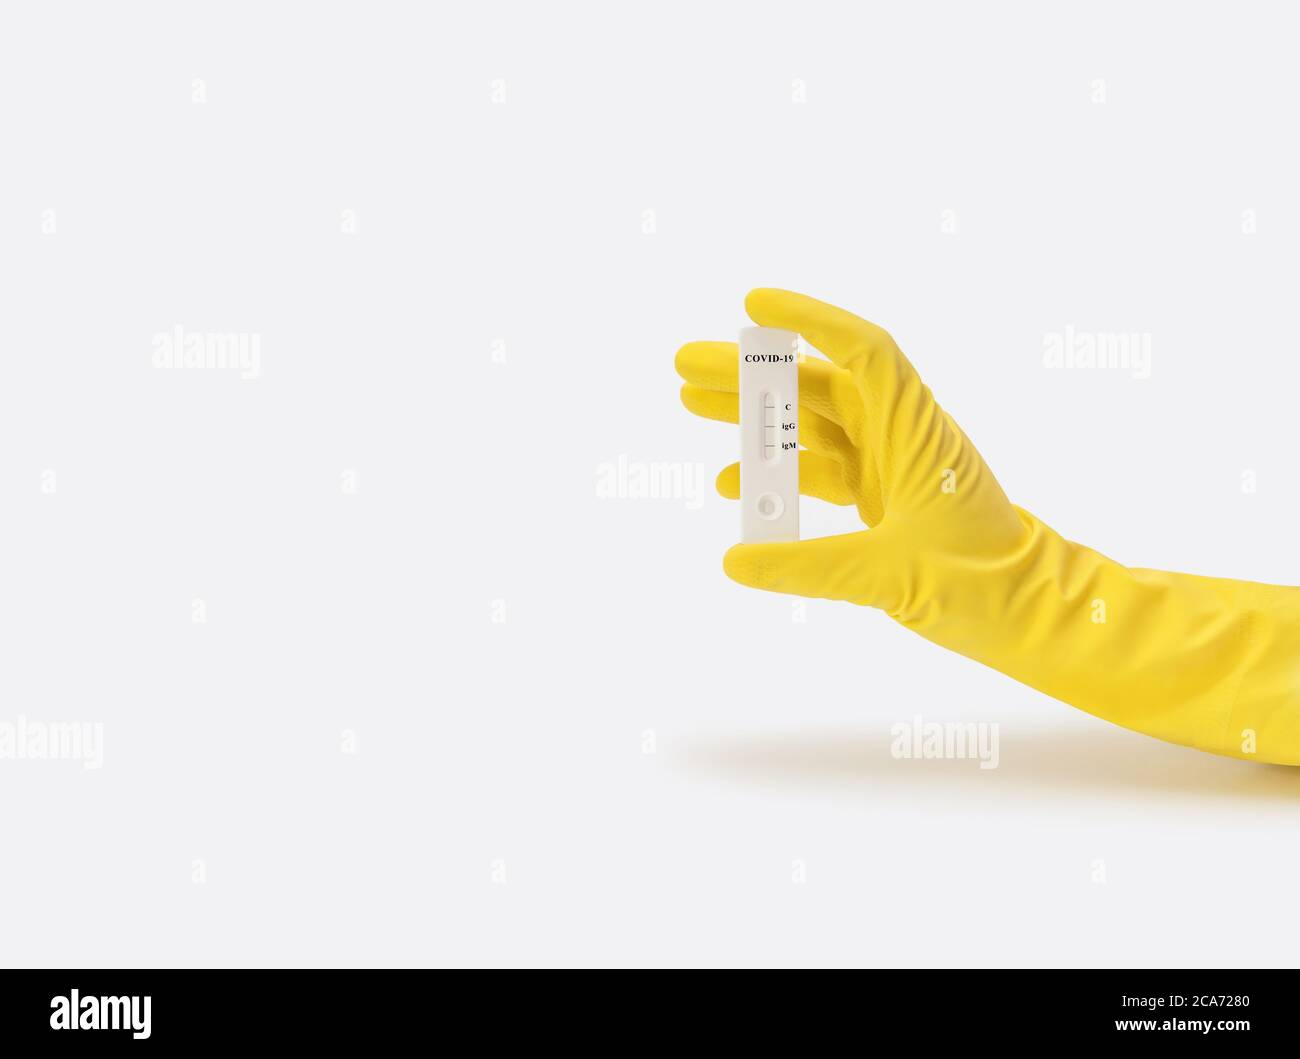 Coronavirus test in hand on a white background. Unused covid-19 test cassette. A hand in a yellow medical glove holds an express test. Copy space. Stock Photo